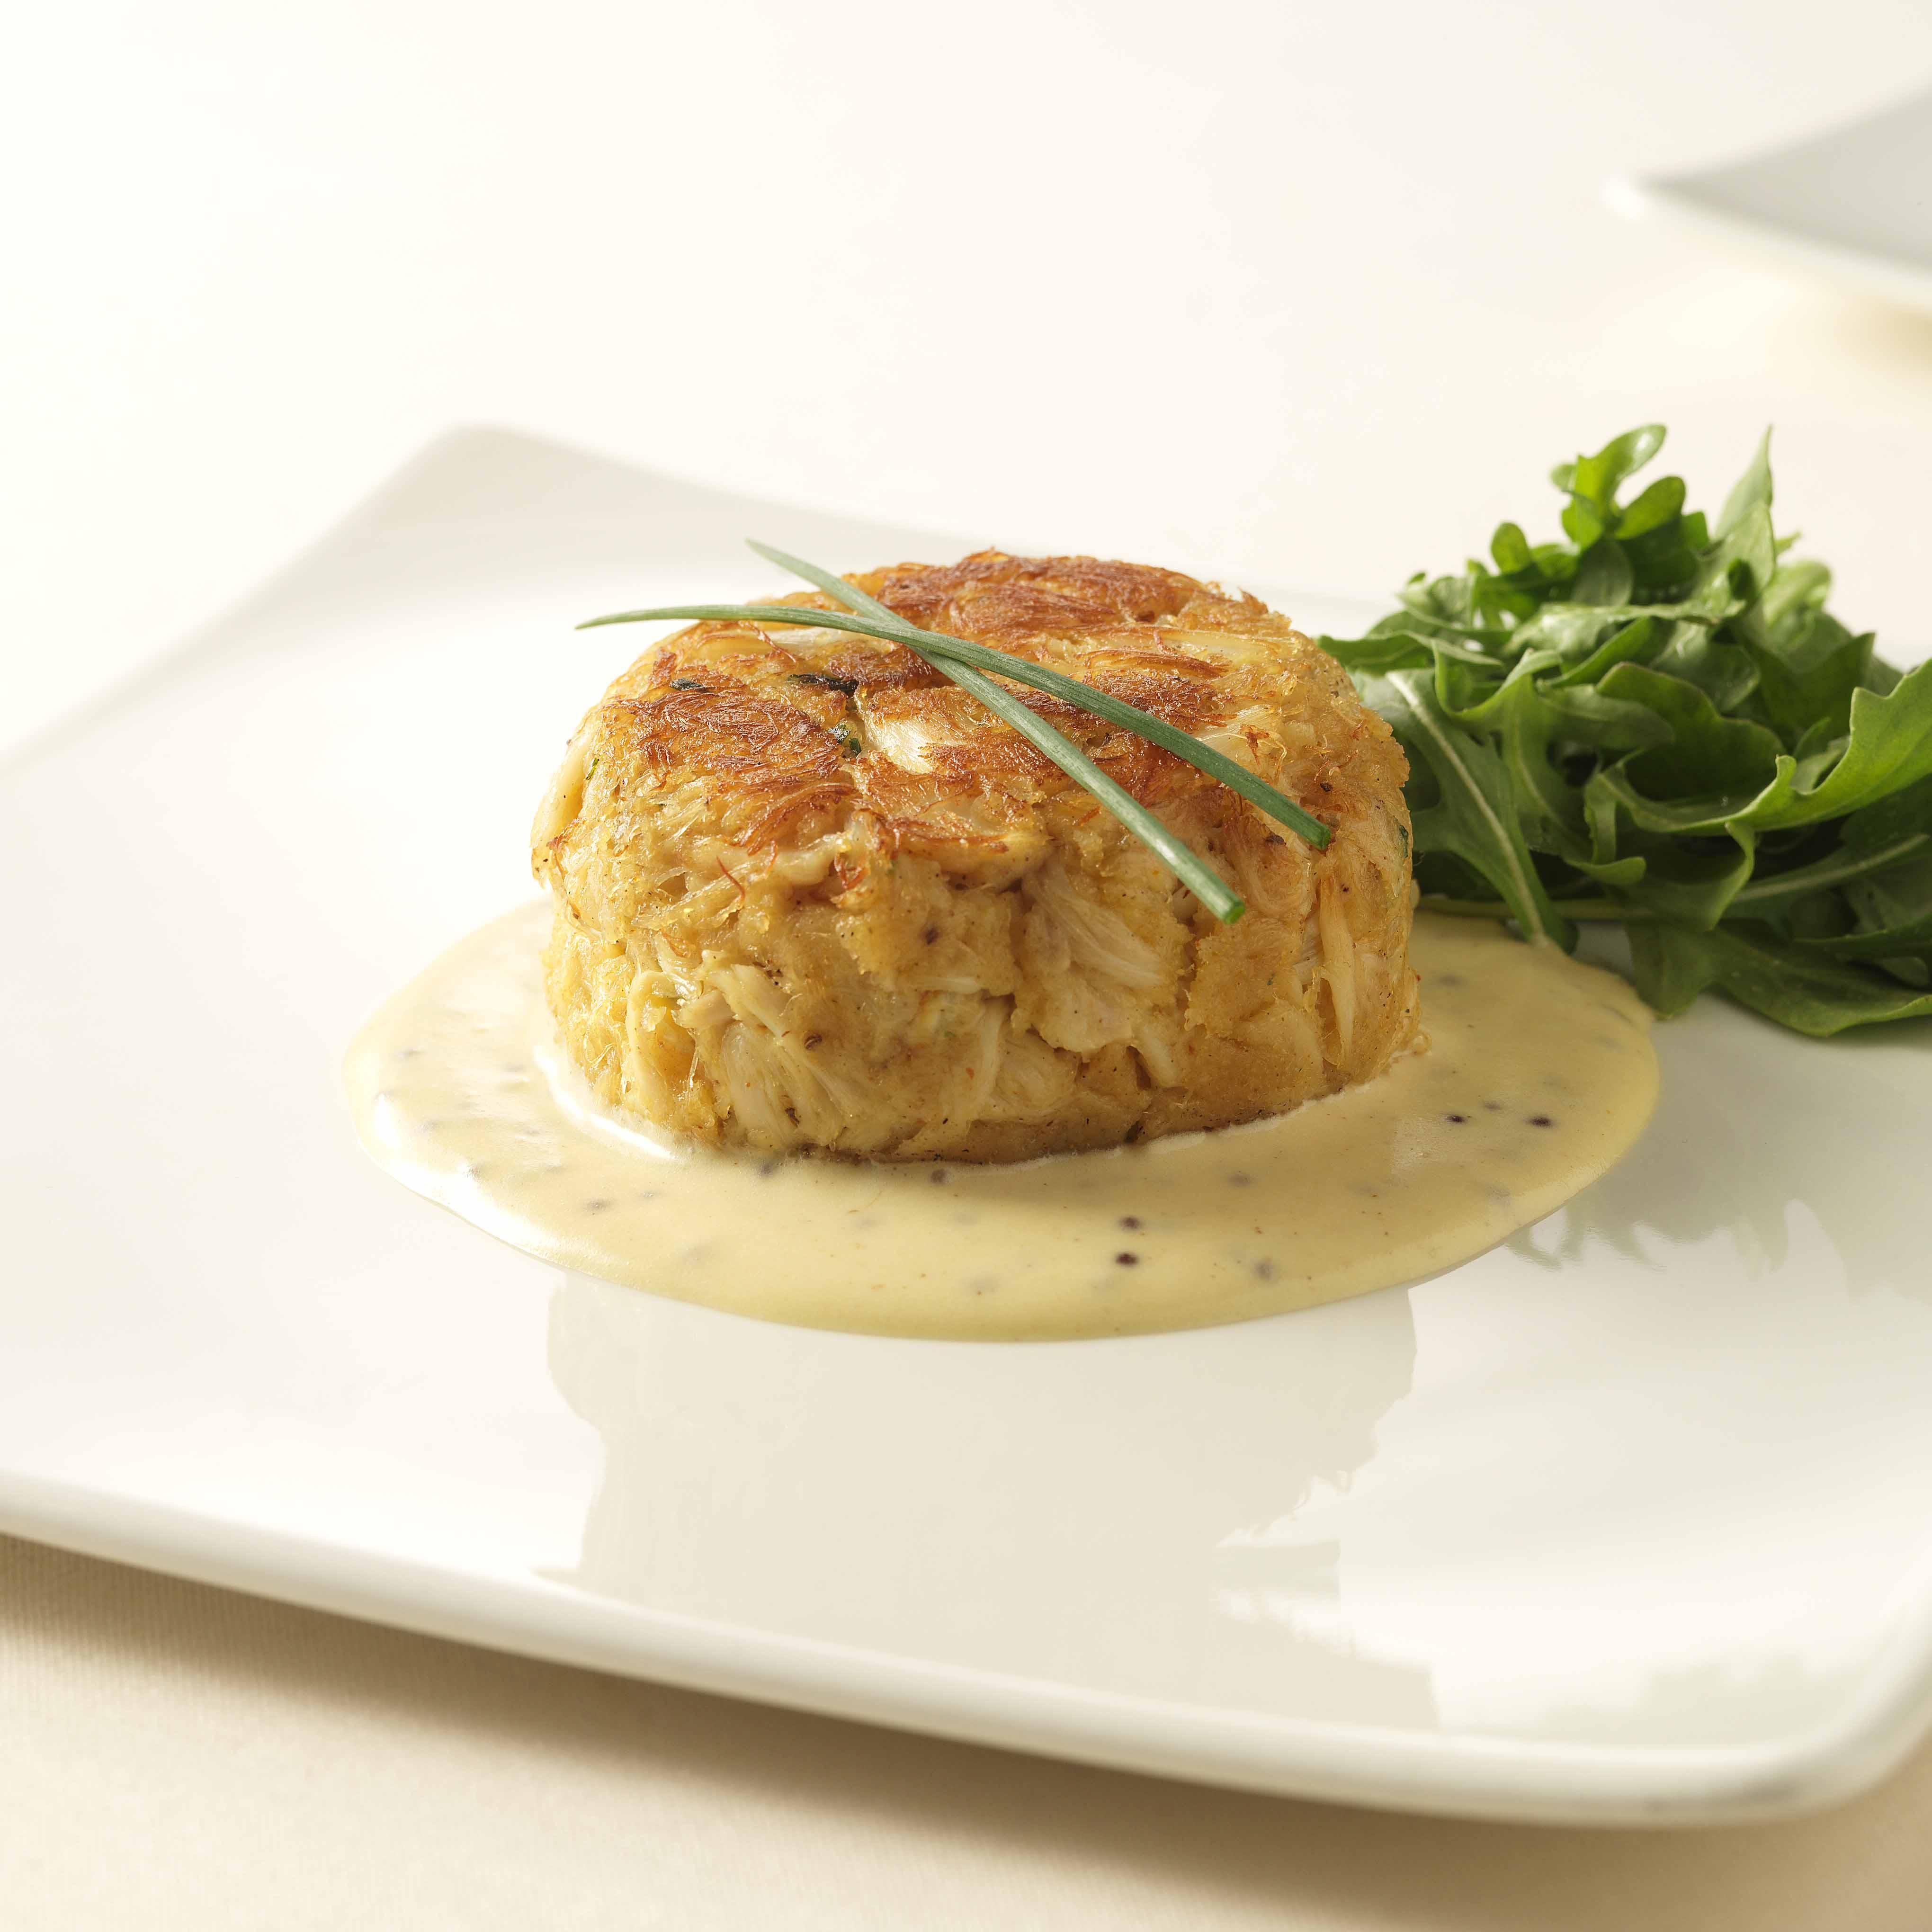 crab cake on top of yellow cream sauce, garnished with salad greens and green onion